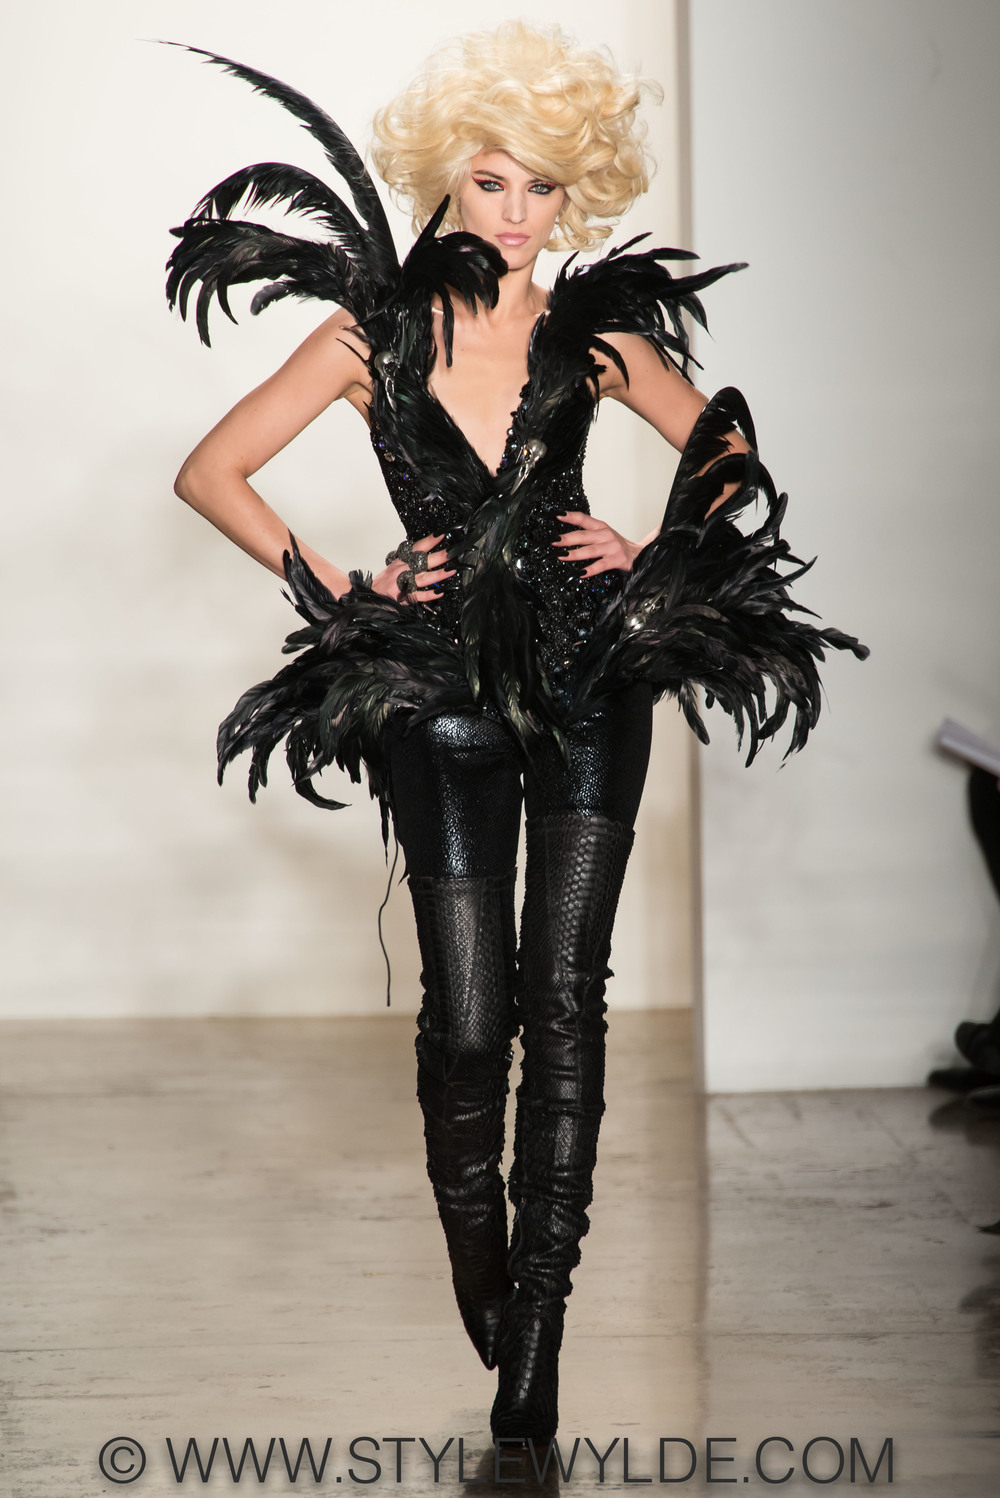 stylewylde_The_Blonds_FW_2013-1.jpg